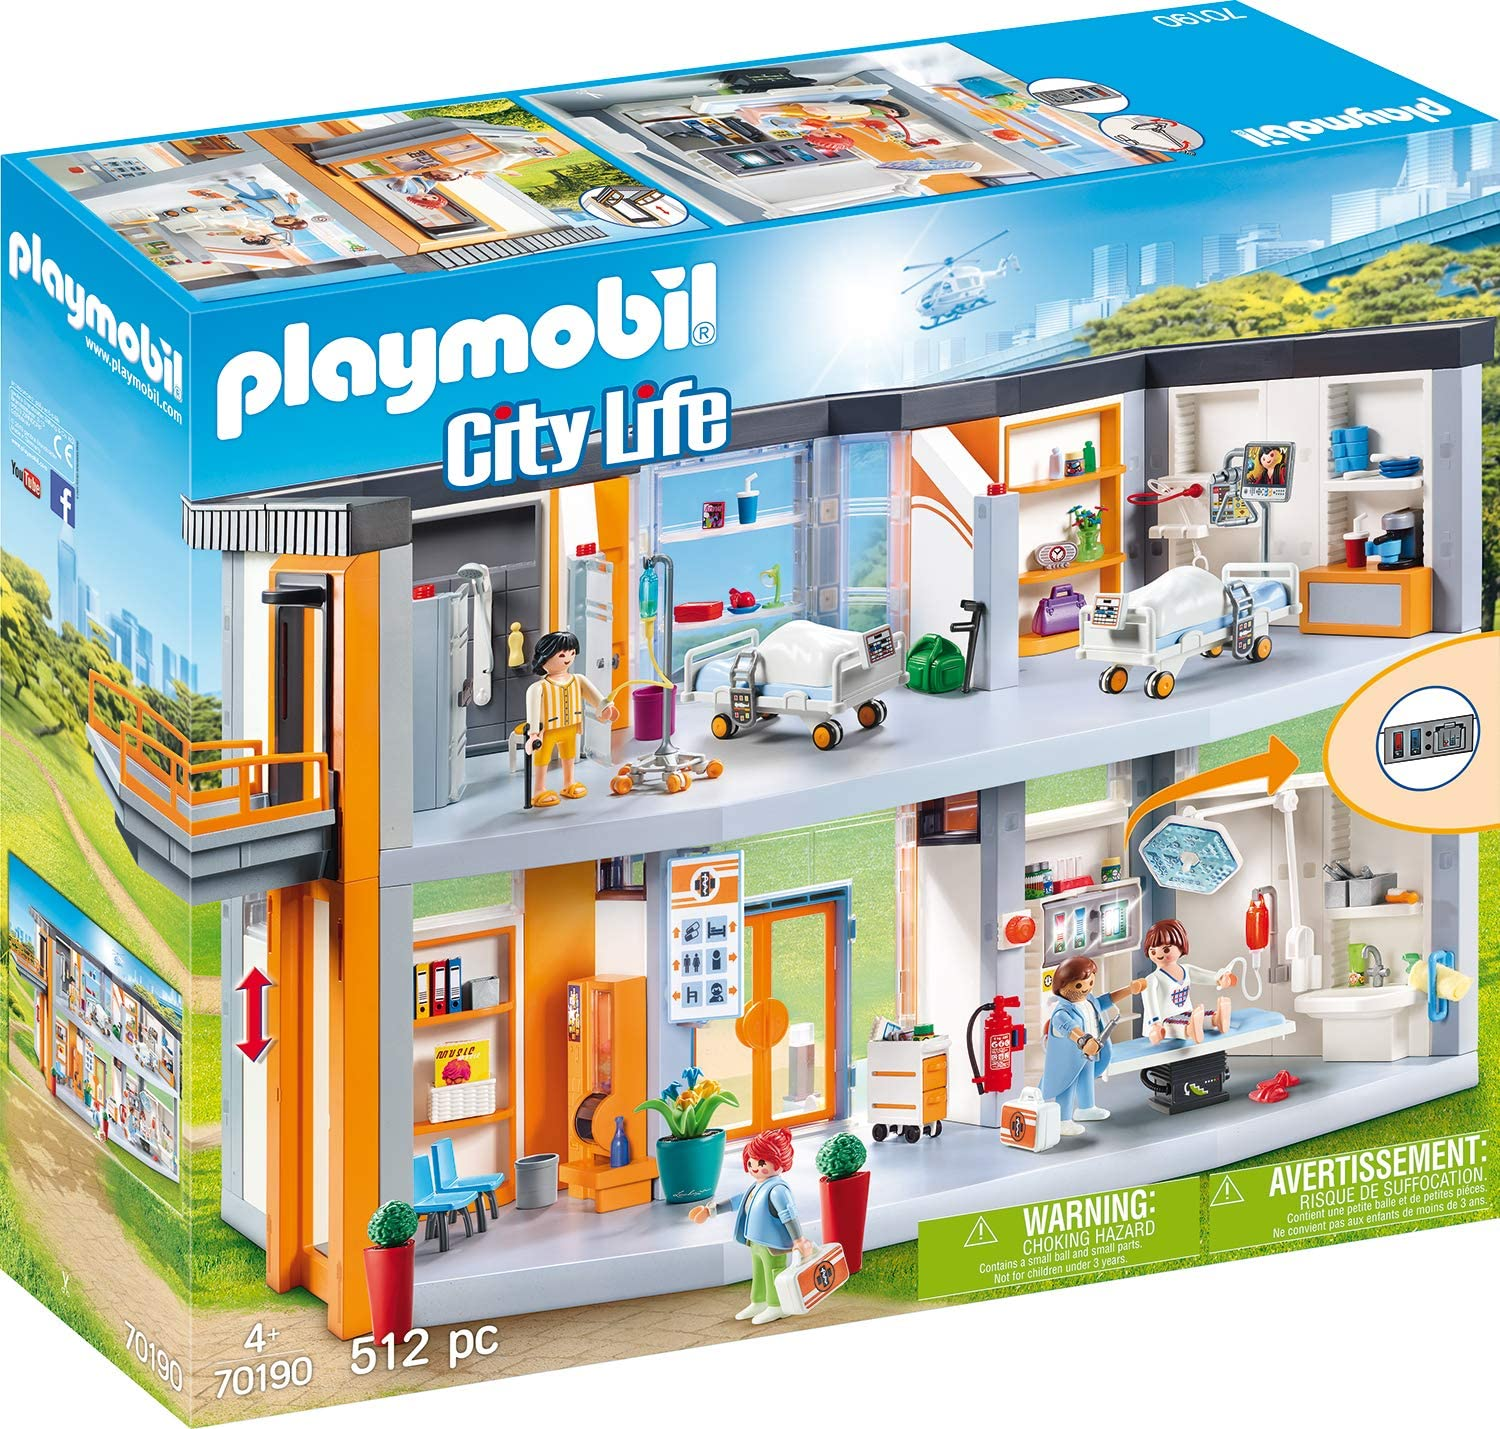 Playmobil- City Life: Gran Hospital Set Juguetes, Multicolor, Talla Única (70190): Amazon.es: Juguetes y juegos